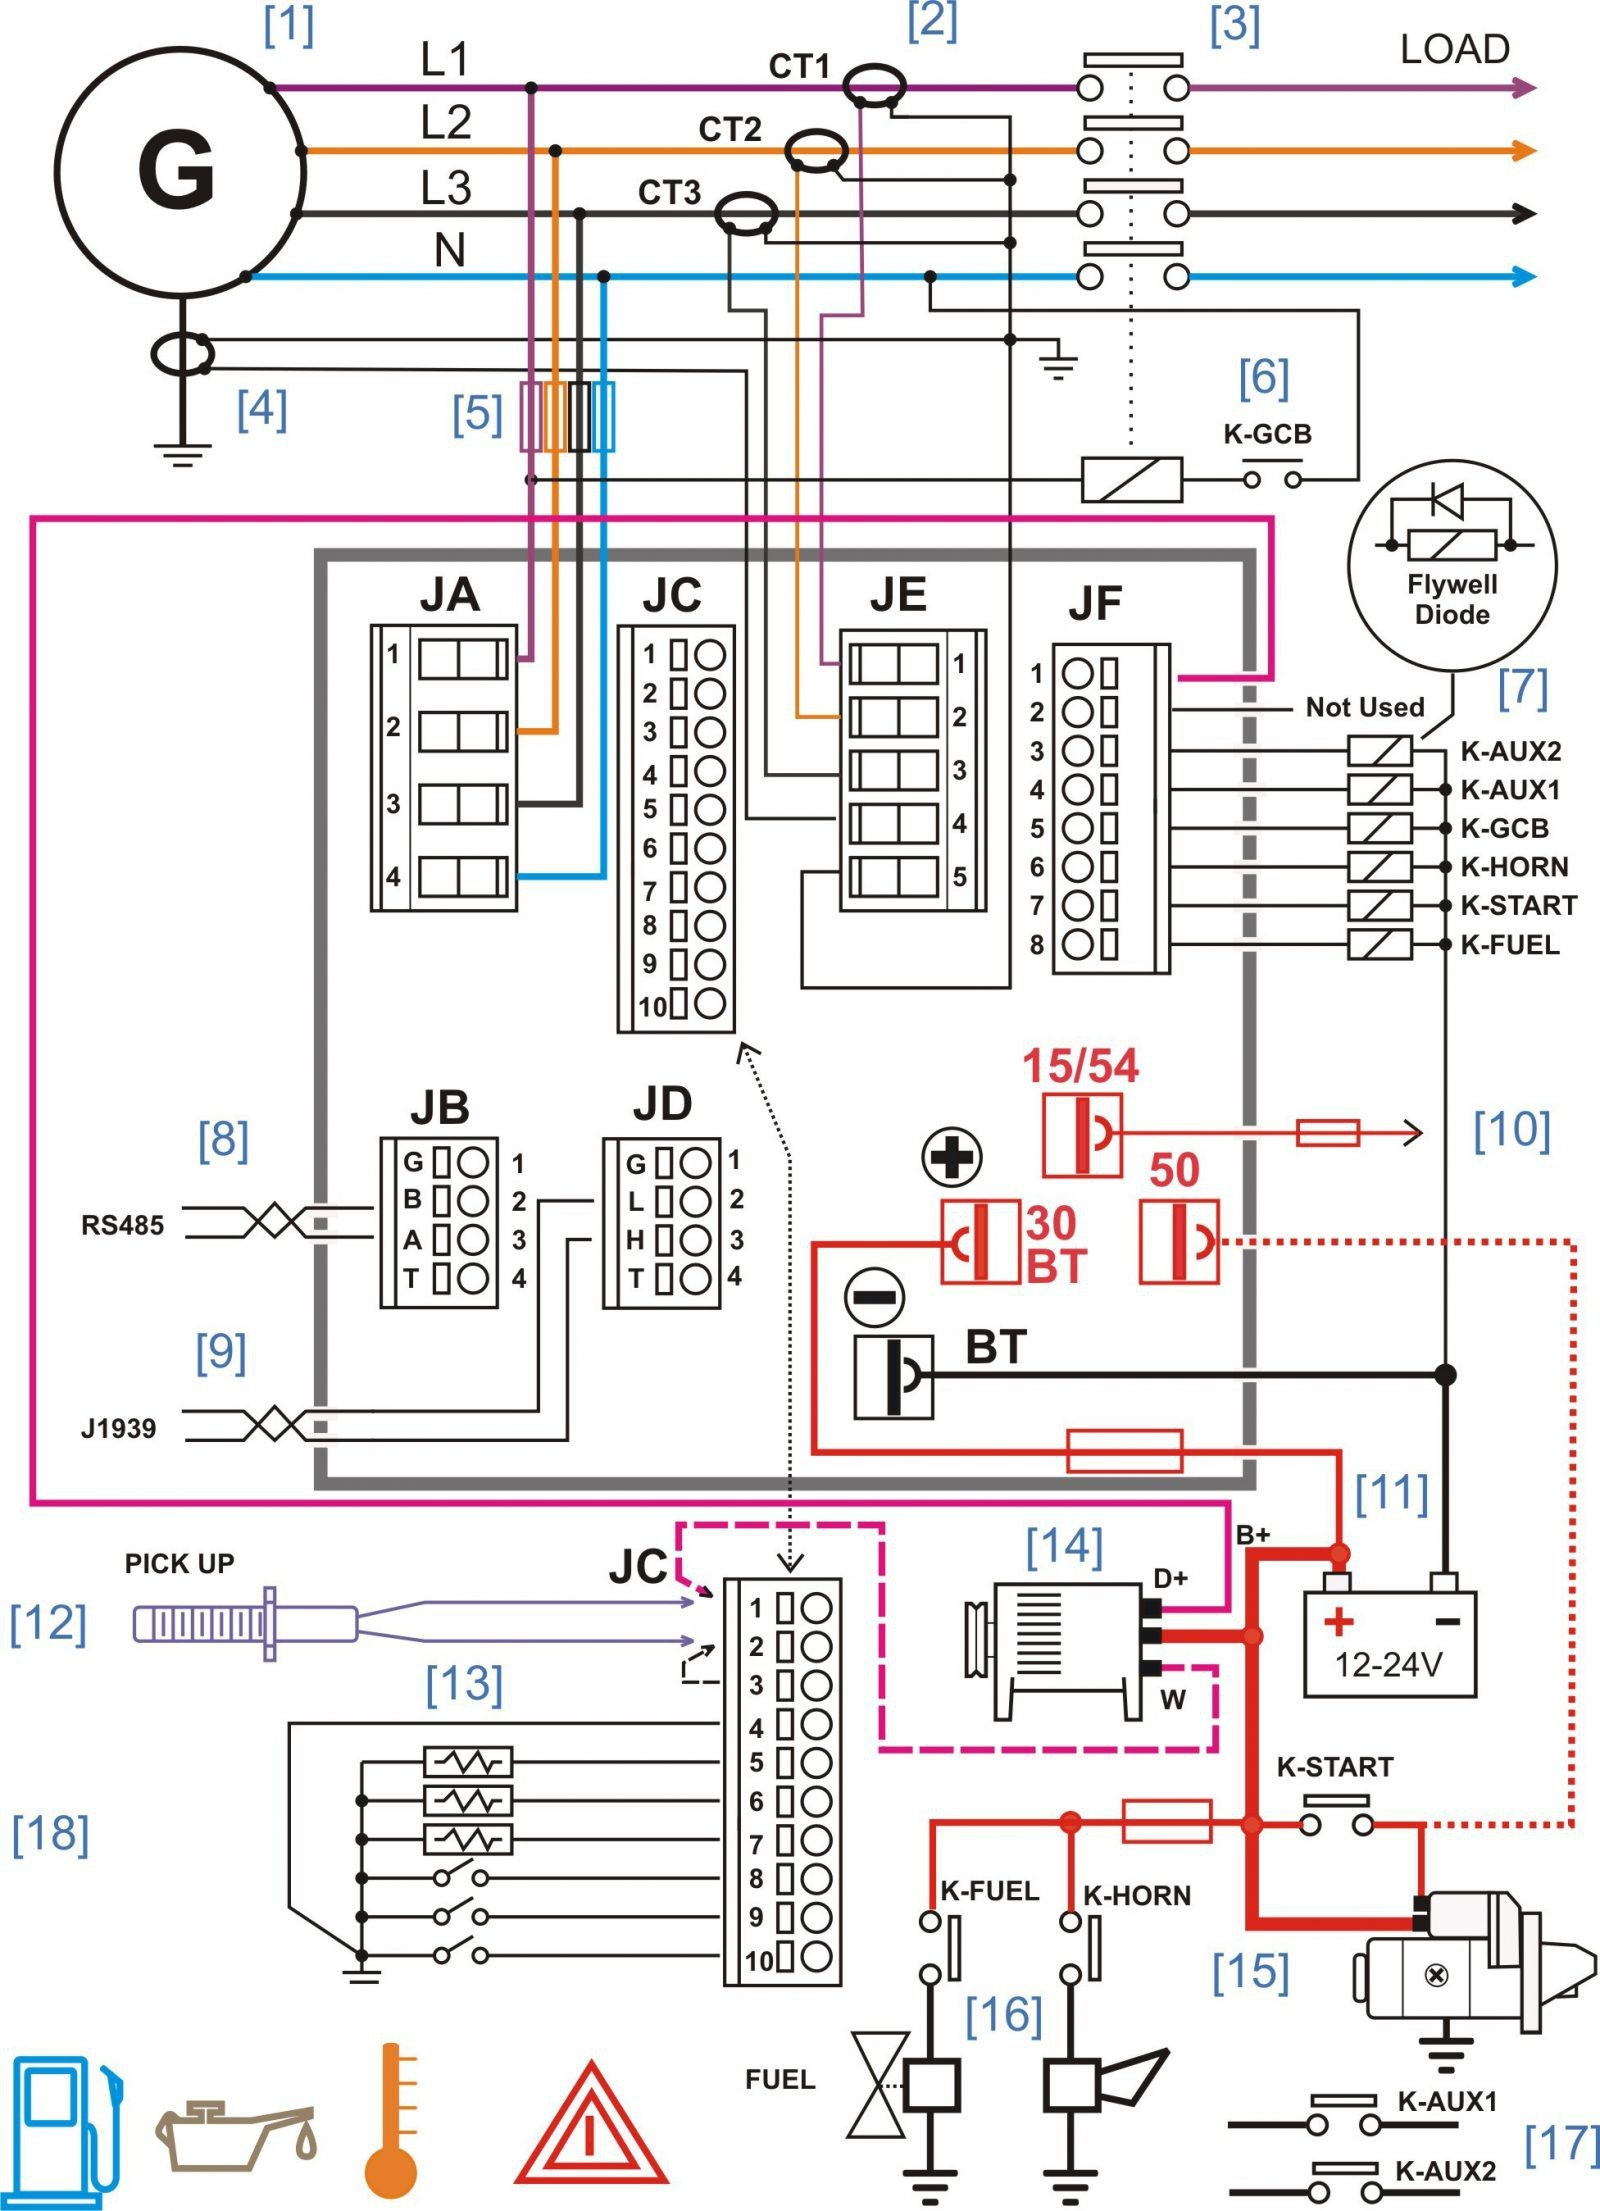 Kenwood Kdc 210u Wiring Diagram Awesome Image X591 Wire Car Radio Stereo Within In Delphi Delco Part Number And